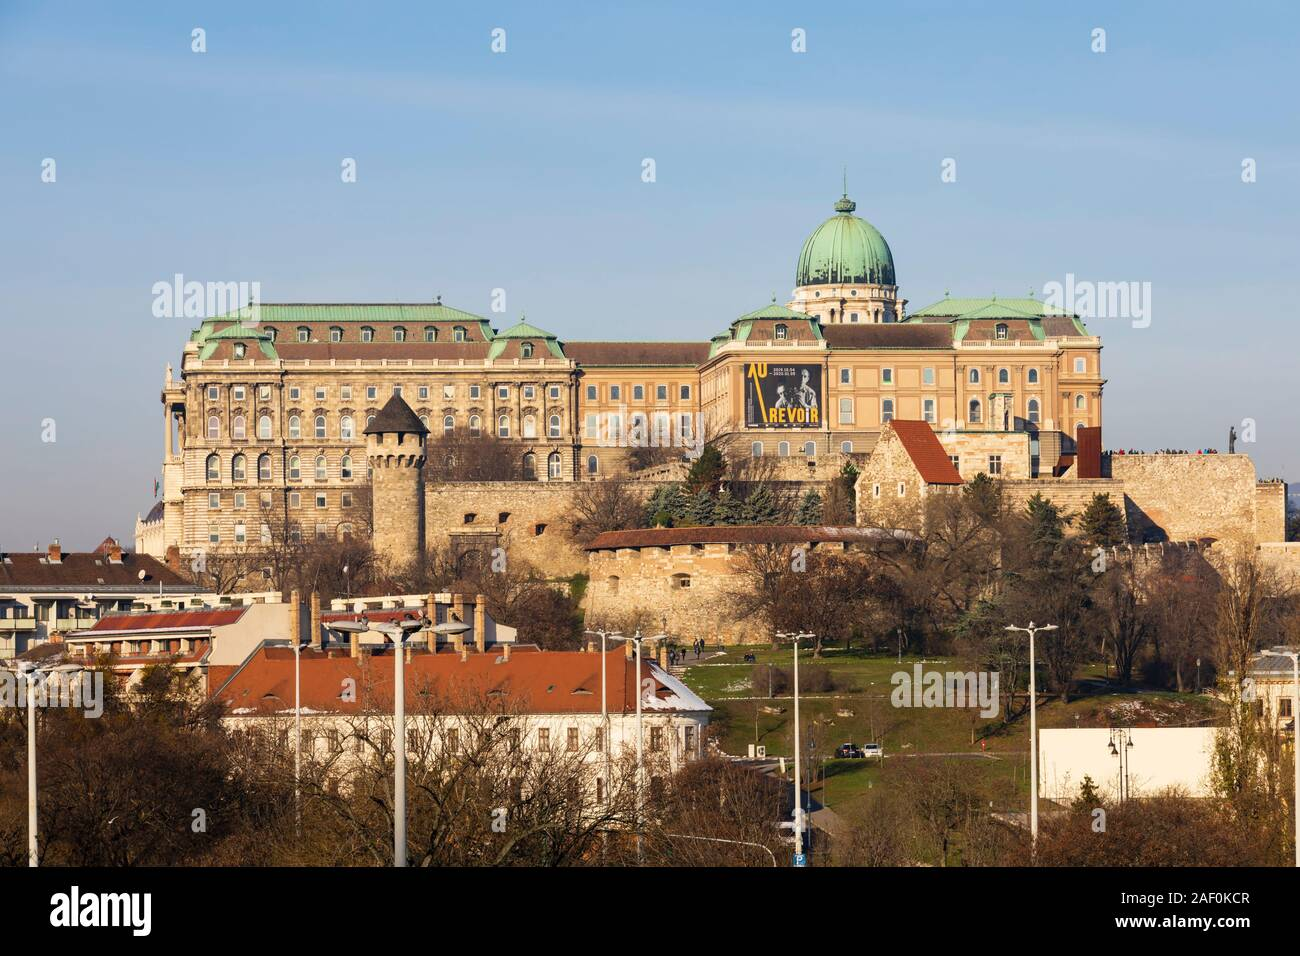 The Royal Palace, Buda Castle, Winter in Budapest, Hungary. December 2019 Stock Photo